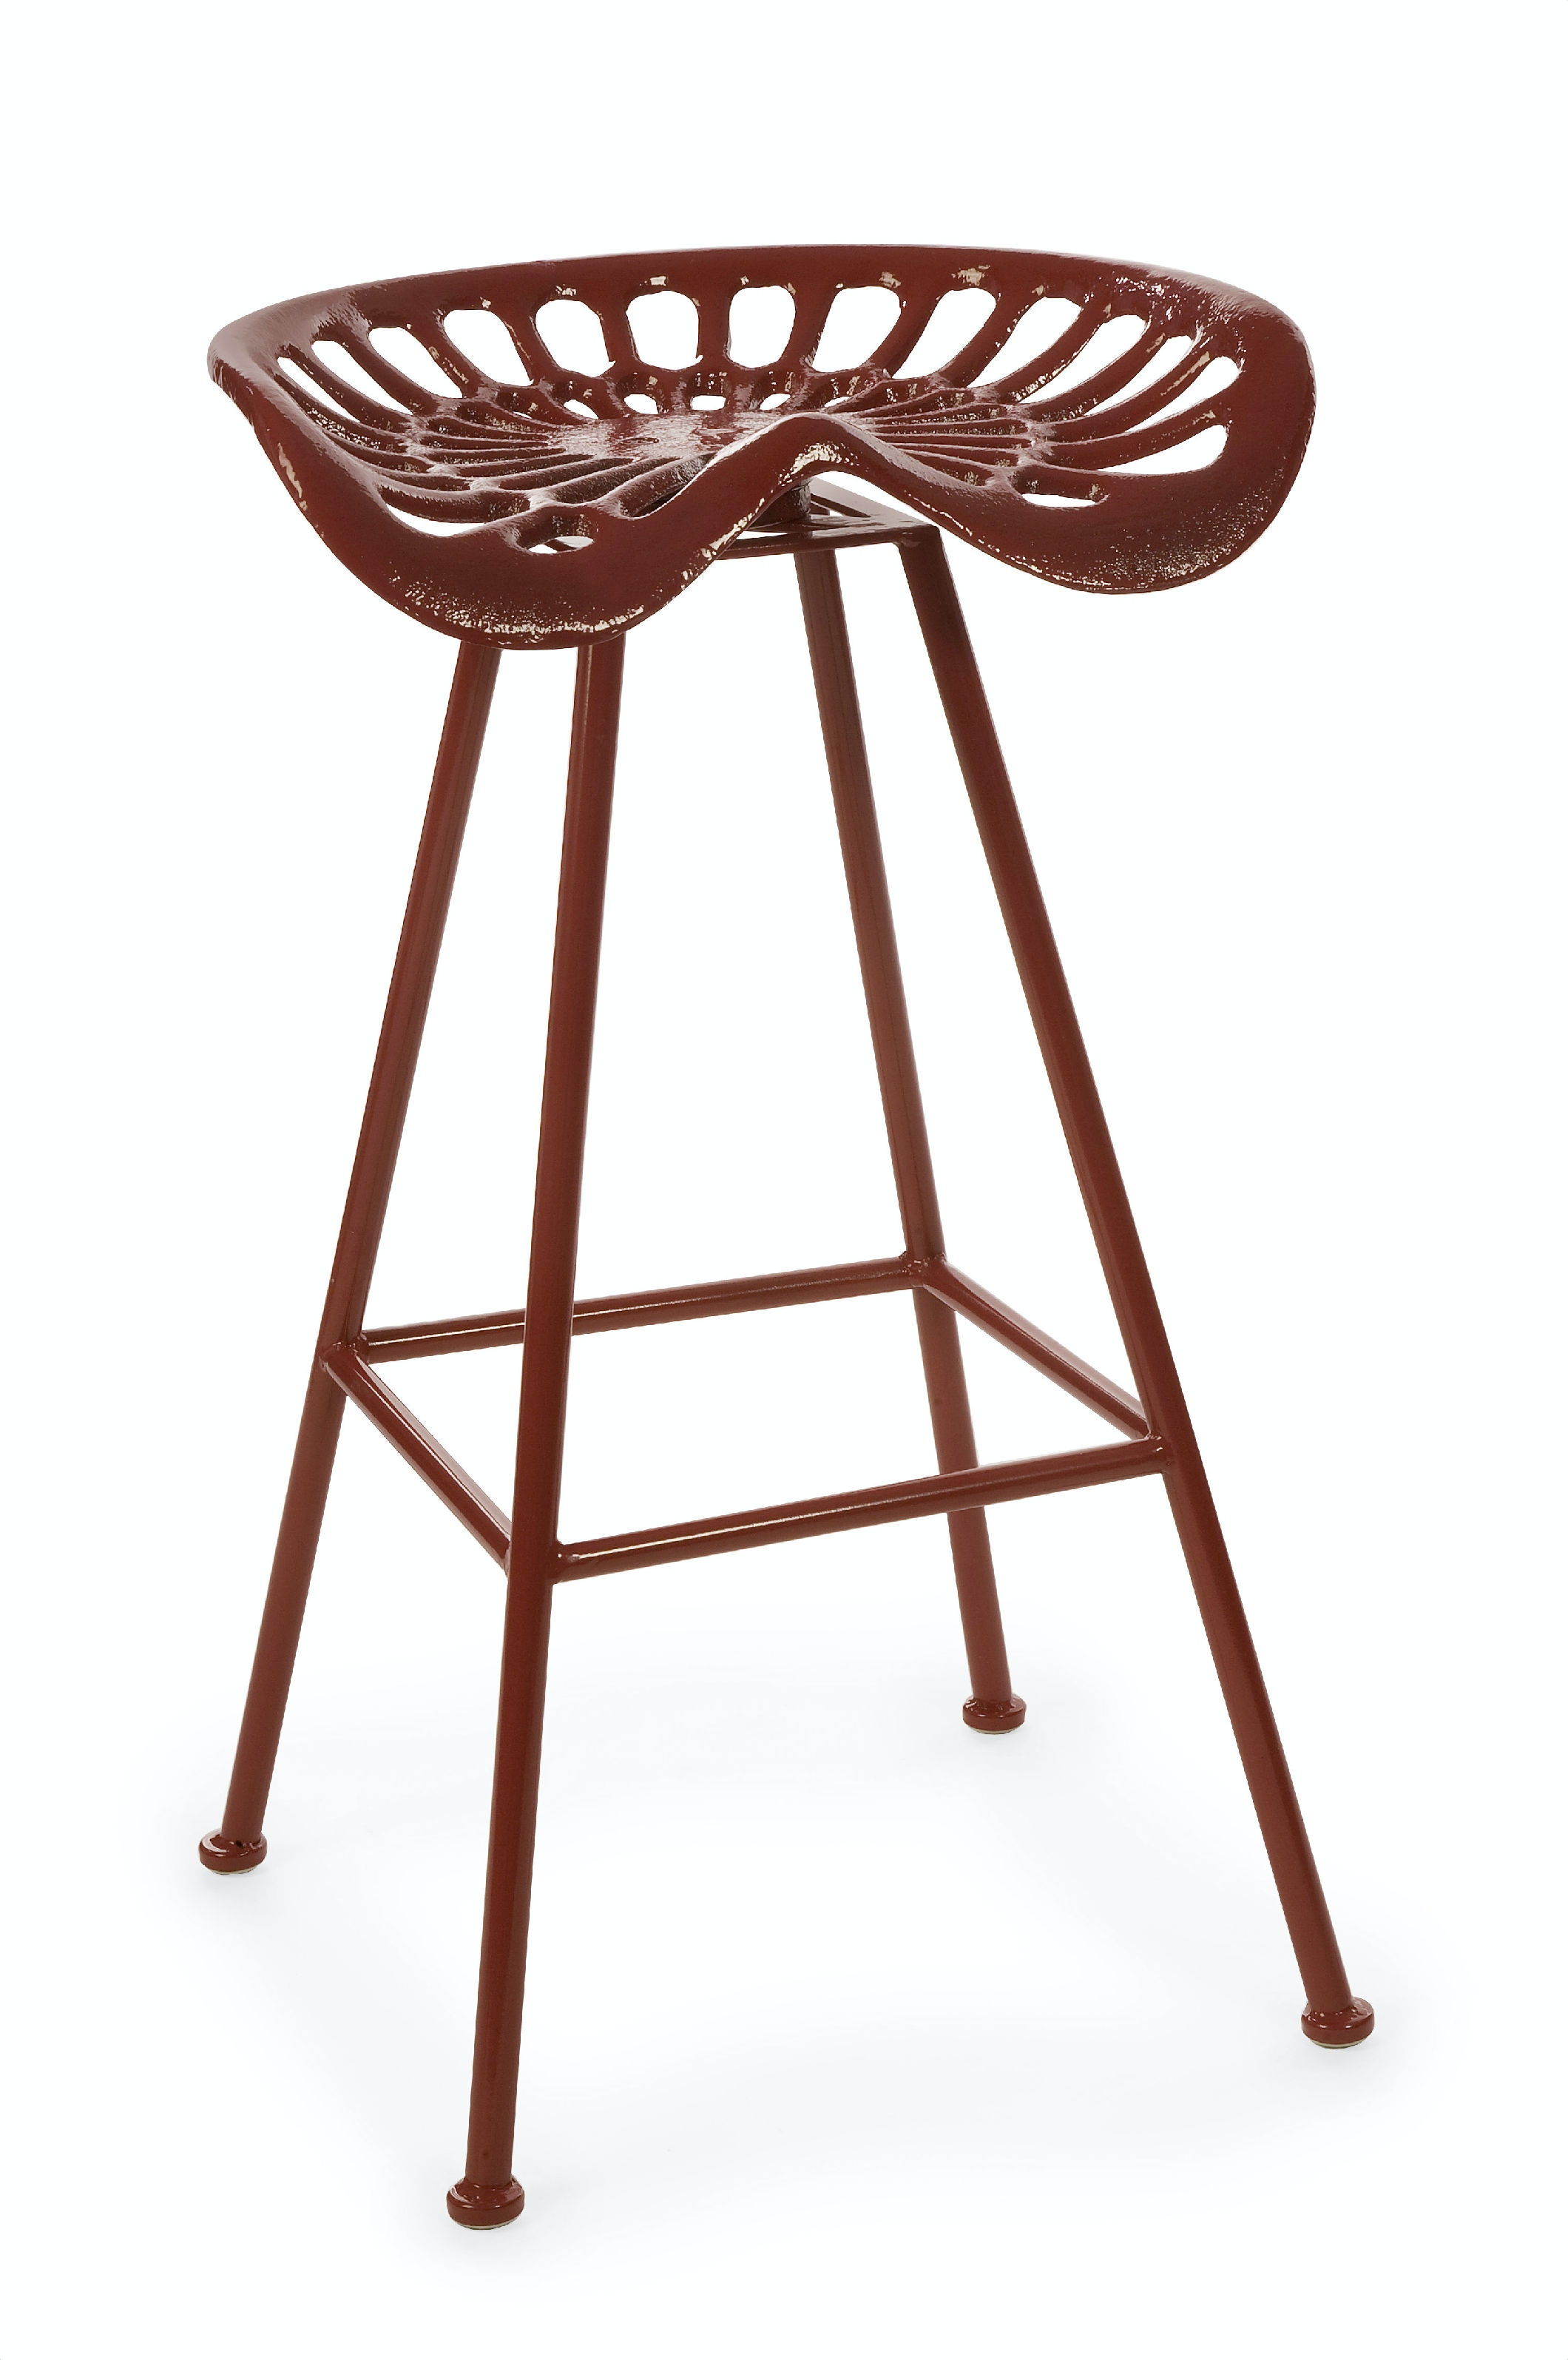 IMAX Corporation Leroy Tractor Seat Stool IX10781 From Walter E. Smithe  Furniture + Design